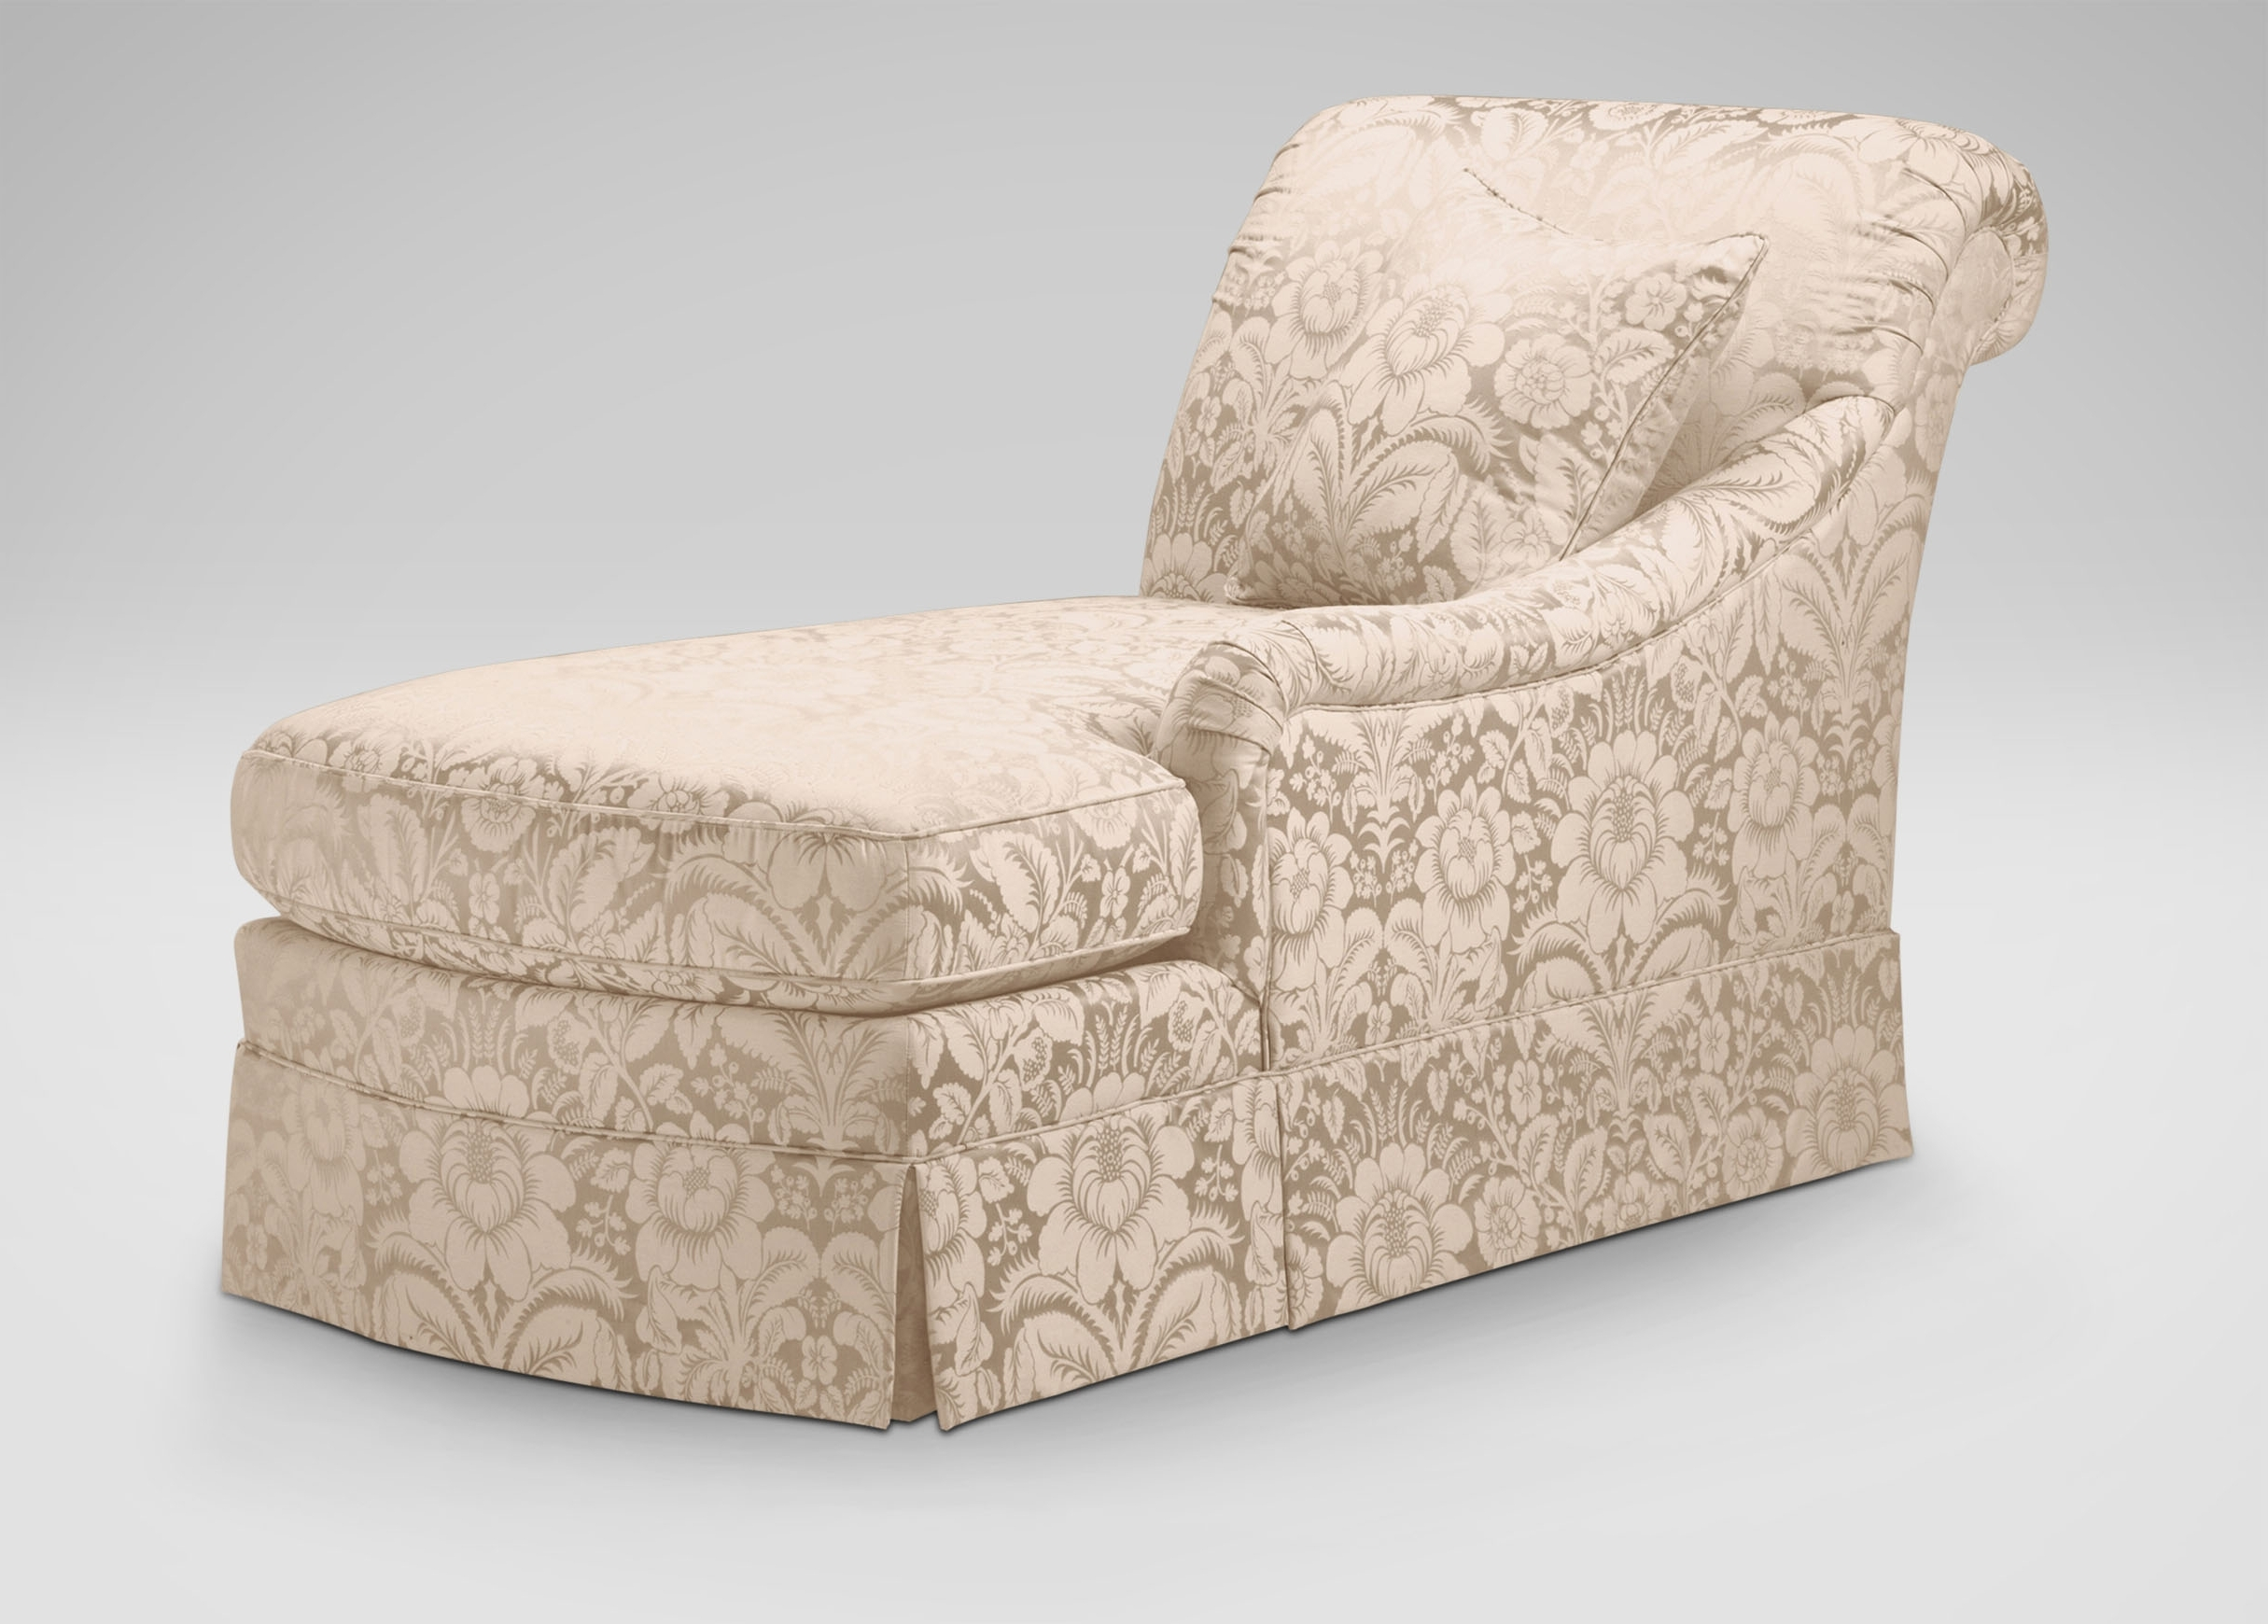 Chaise Lounge Slipcovers – Slipcovers For Chaise Lounge Chairs Throughout Well Liked Indoor Chaise Lounge Covers (View 3 of 15)